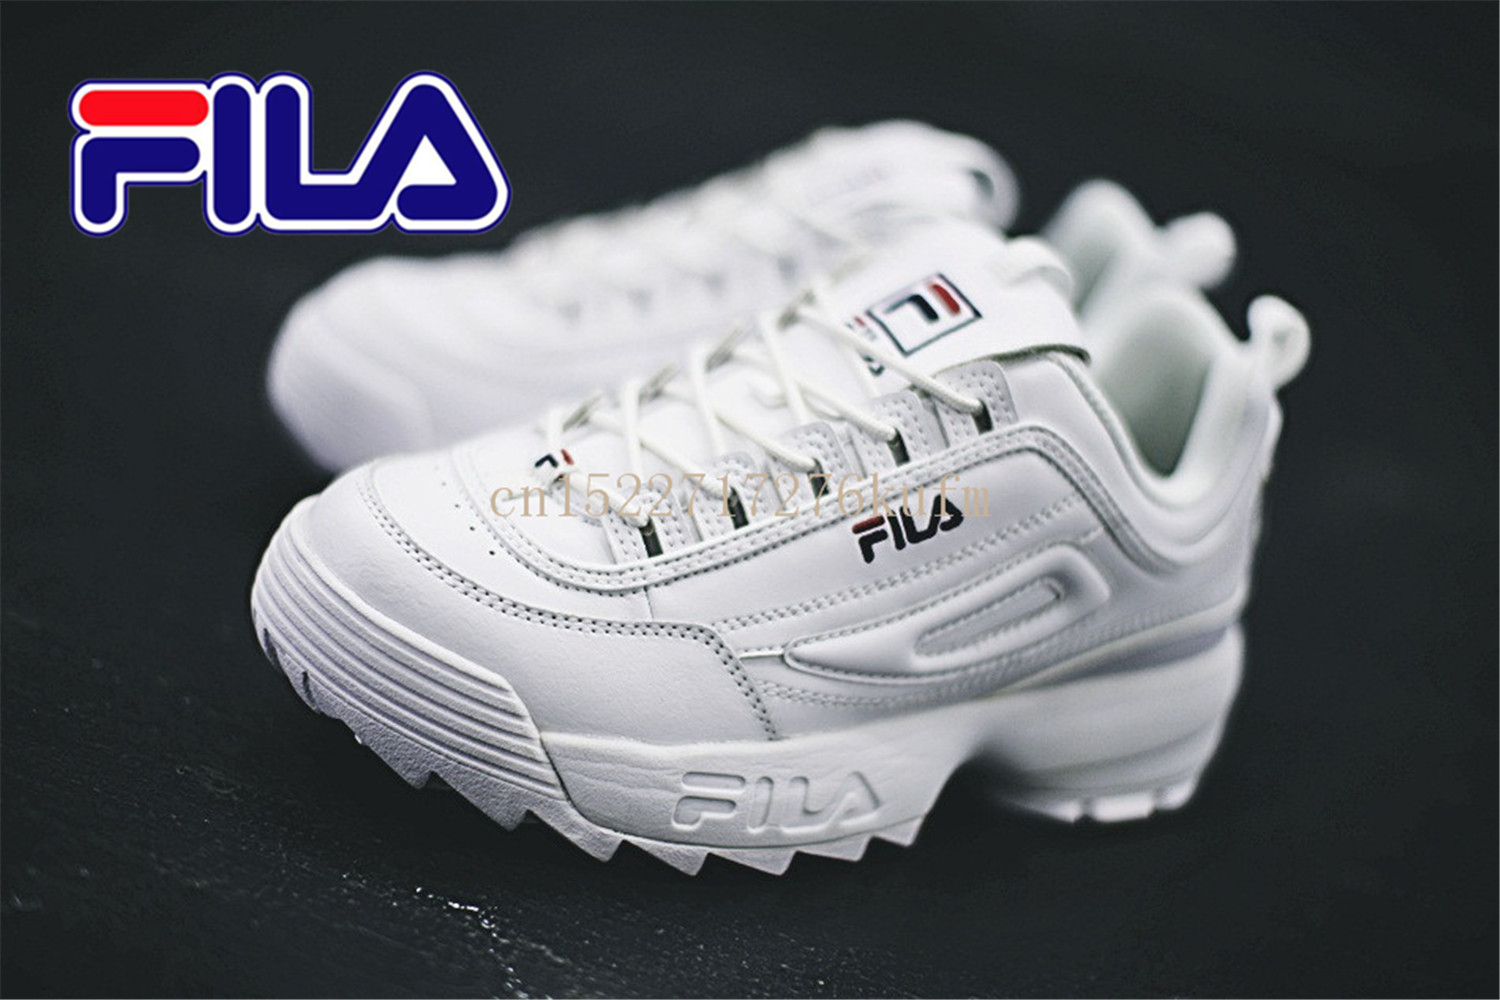 official photos d07a4 2bcd9 R Fila Jusqu Gt  Pas Duction 36 2 Promotions Brun Cher Disruptor fq144F